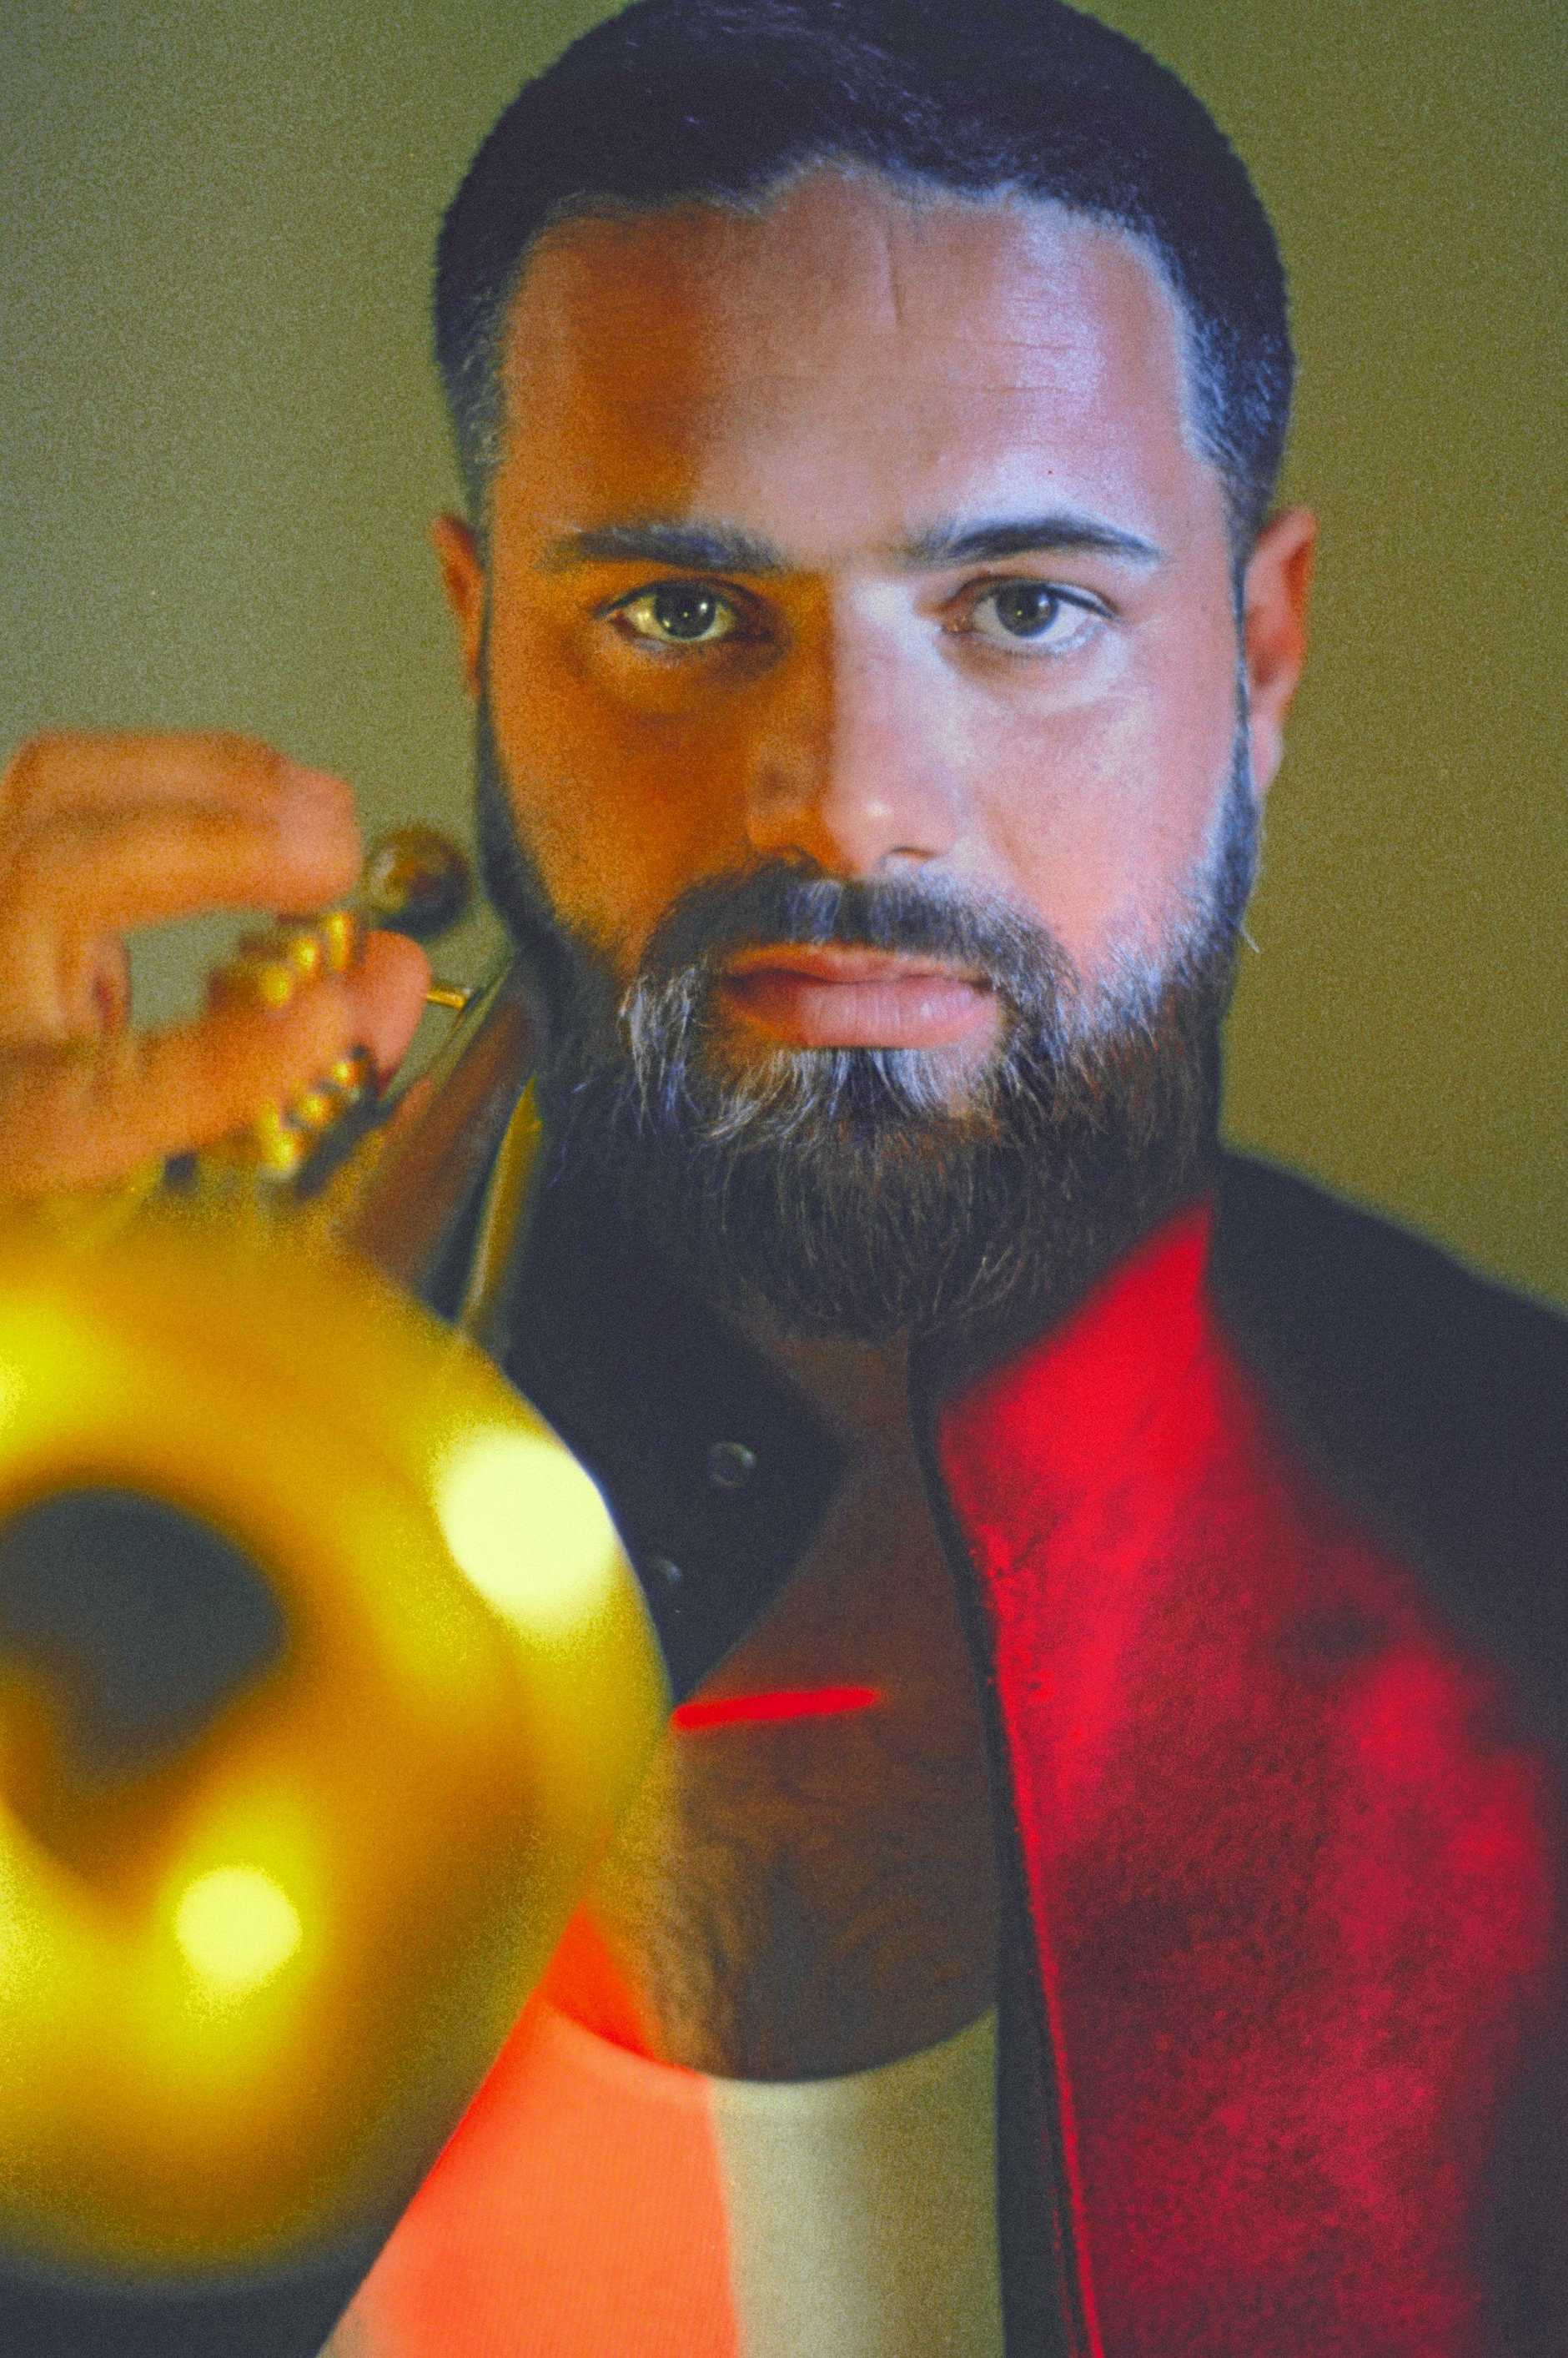 BYRON RESIDENT: Harry James Angus will perform at this year's Mullum Music Festival.